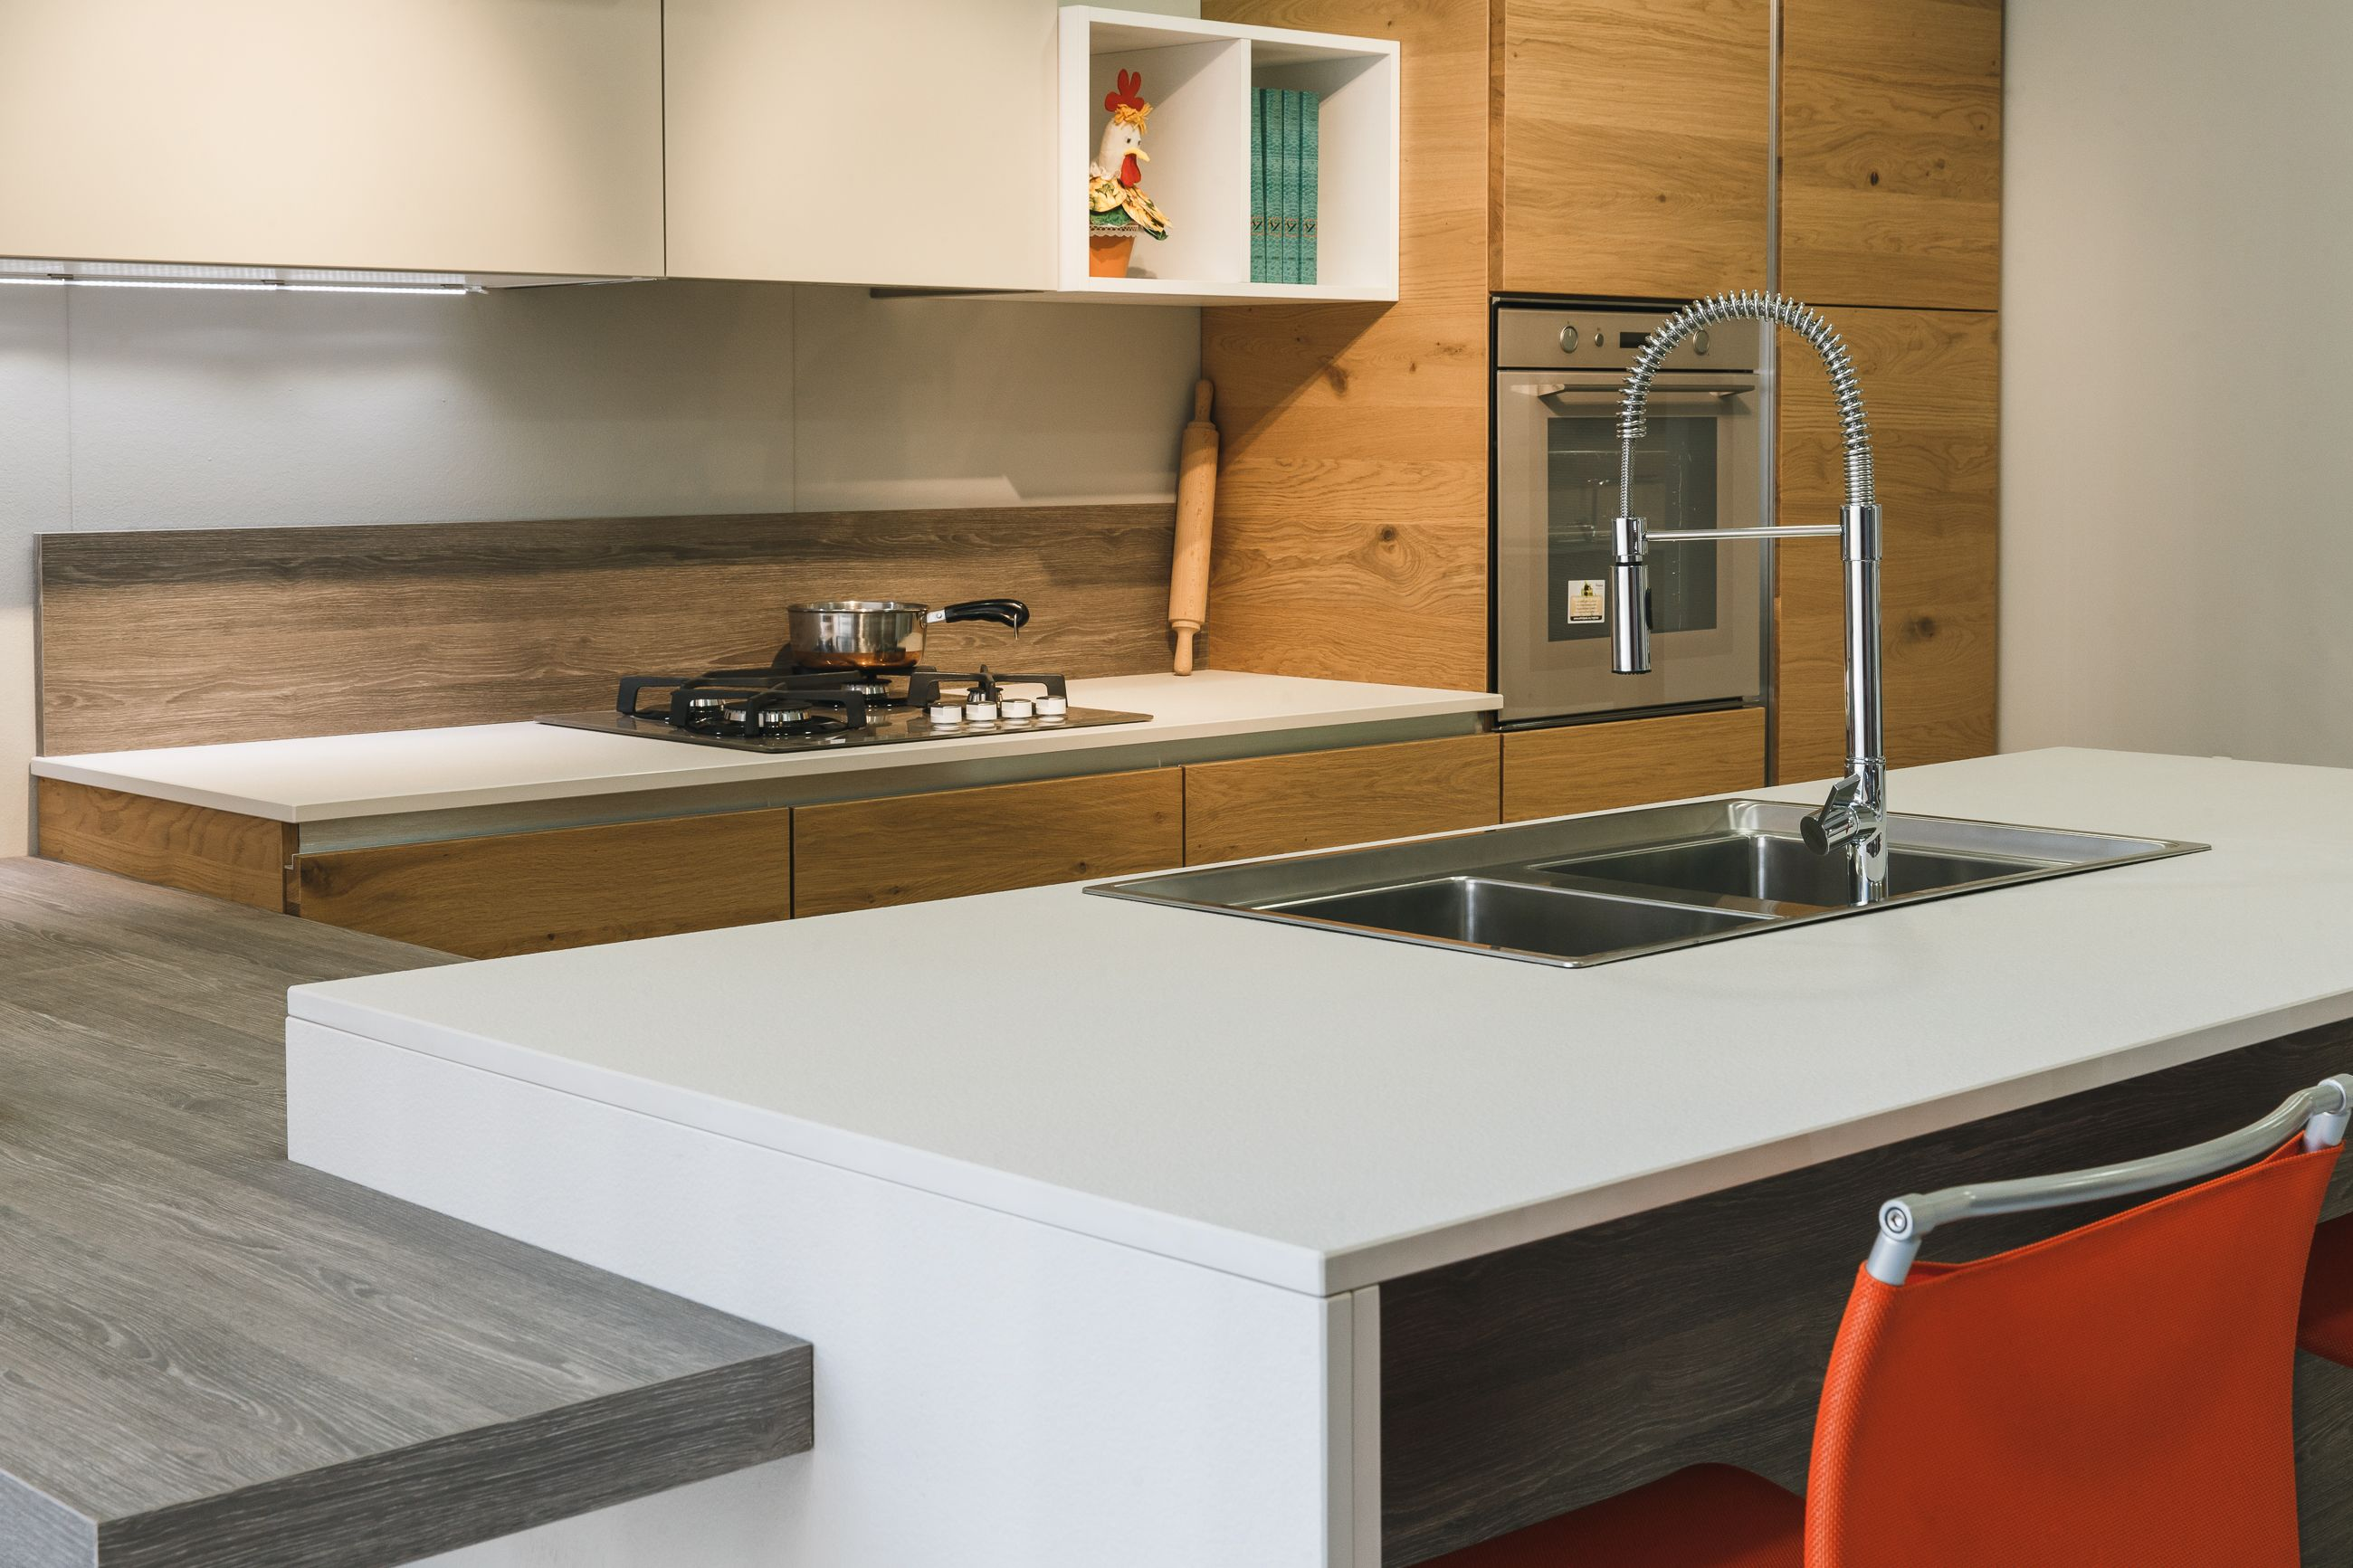 Lapitec Full Bodied Sintered Stone Will Give That Extra Shine To Your Kitchen Check It Out On Our Website Modern Kitchen Lapitec Kitchen